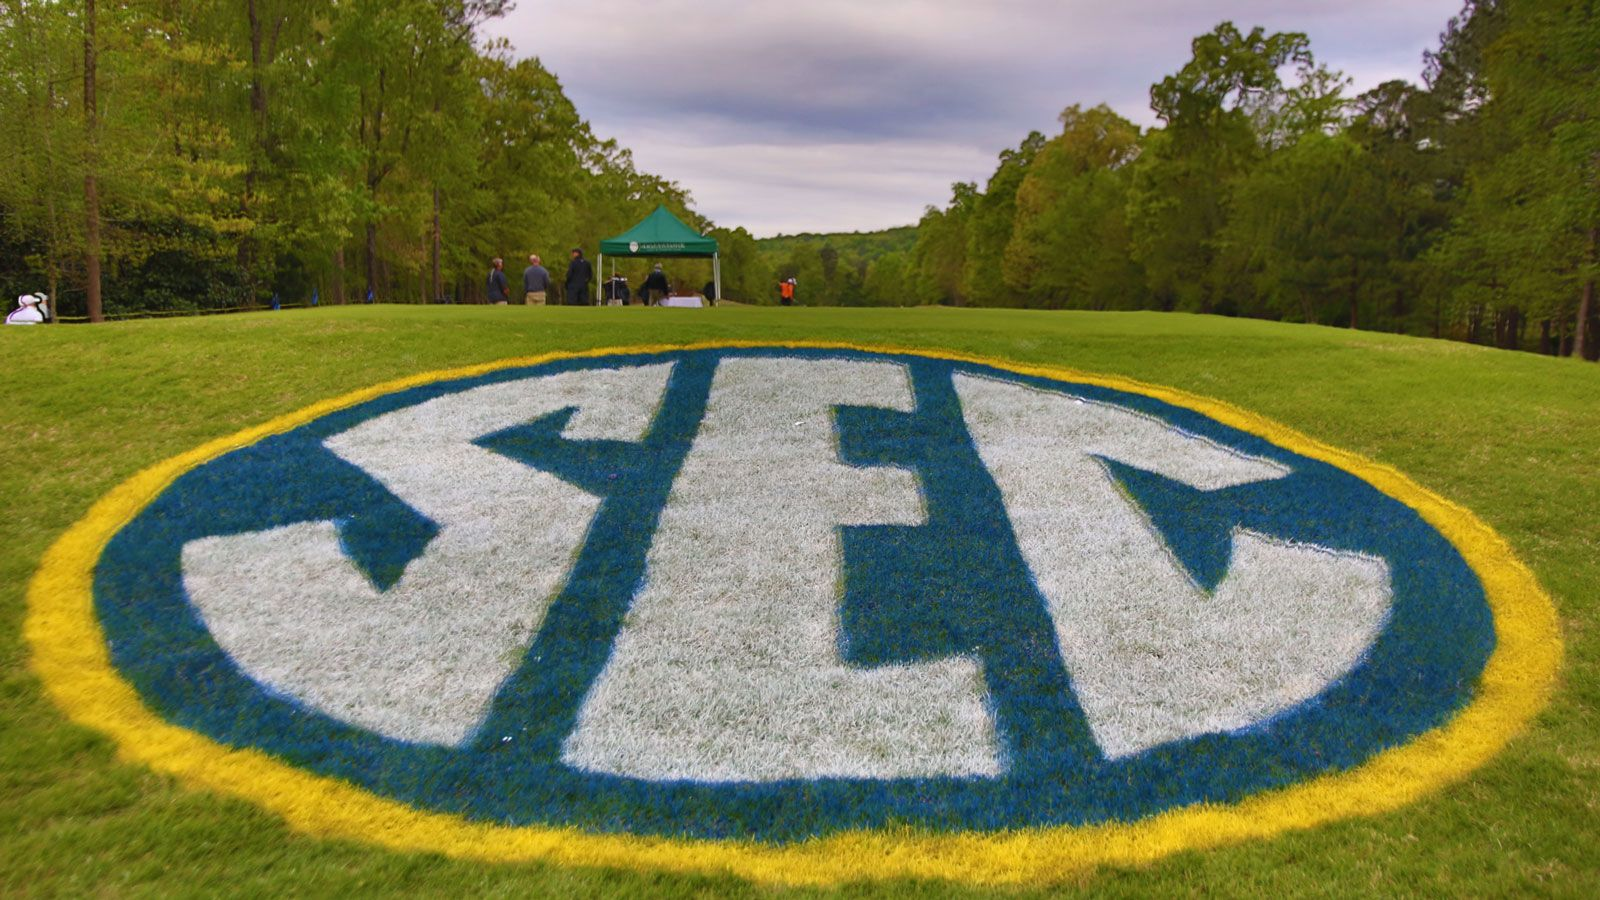 2016 SEC Women's Golf Awards announced